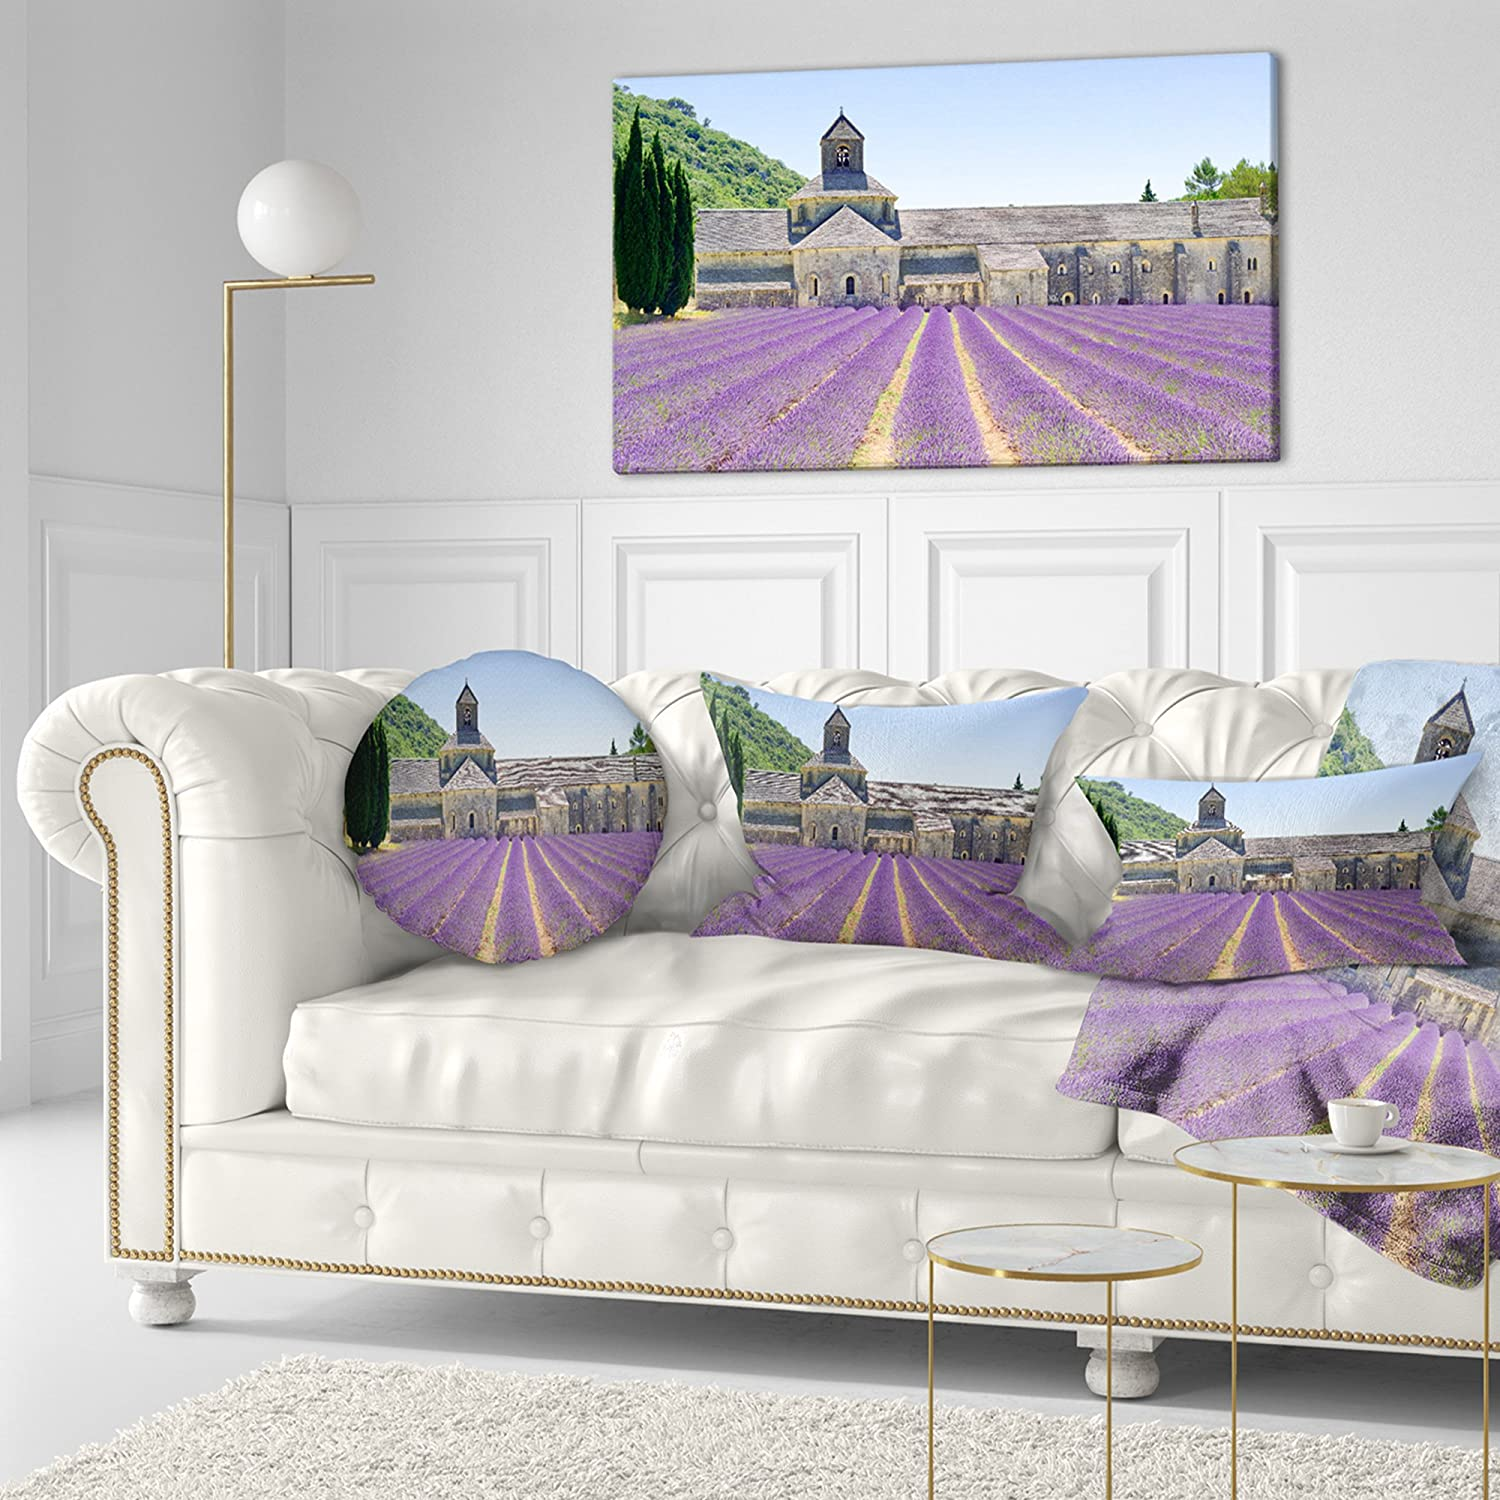 in x 20 in Sofa Throw Pillow 12 in Designart CU11406-12-20 Abbey of Senanque Blooming Lavender Landscape Wall Lumbar Cushion Cover for Living Room